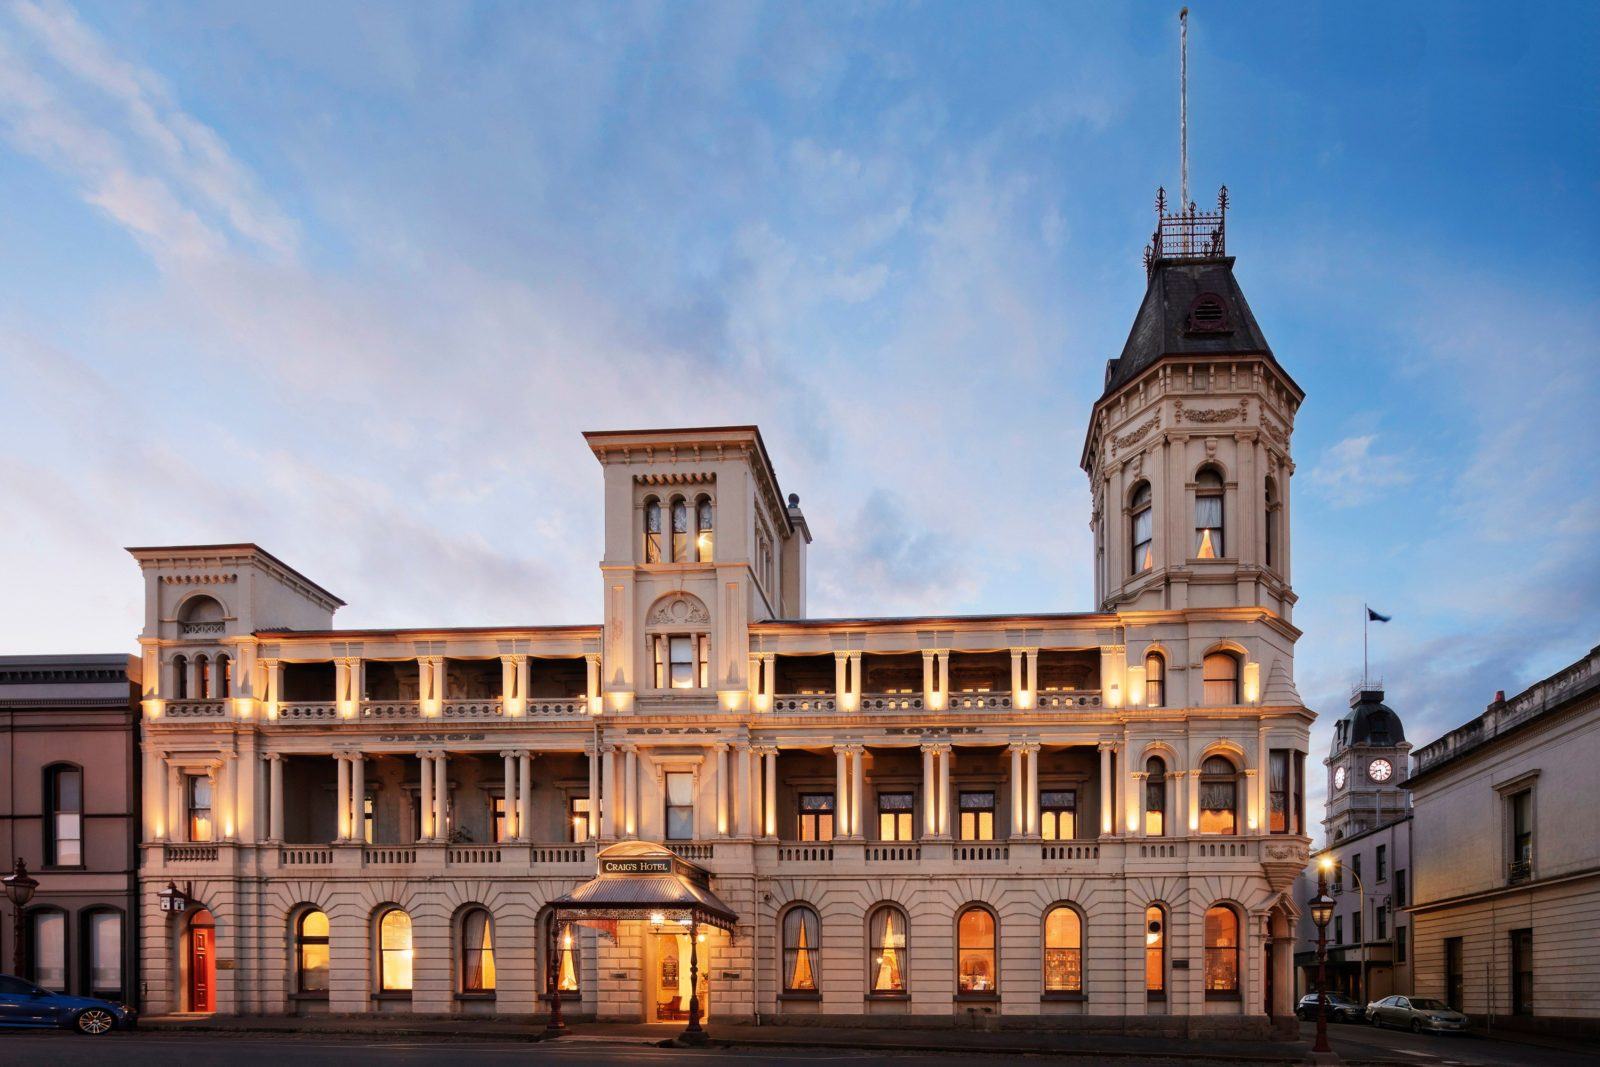 Craig's Royal Hotel - an iconic Australian heritage hotel restored to magnificent condition